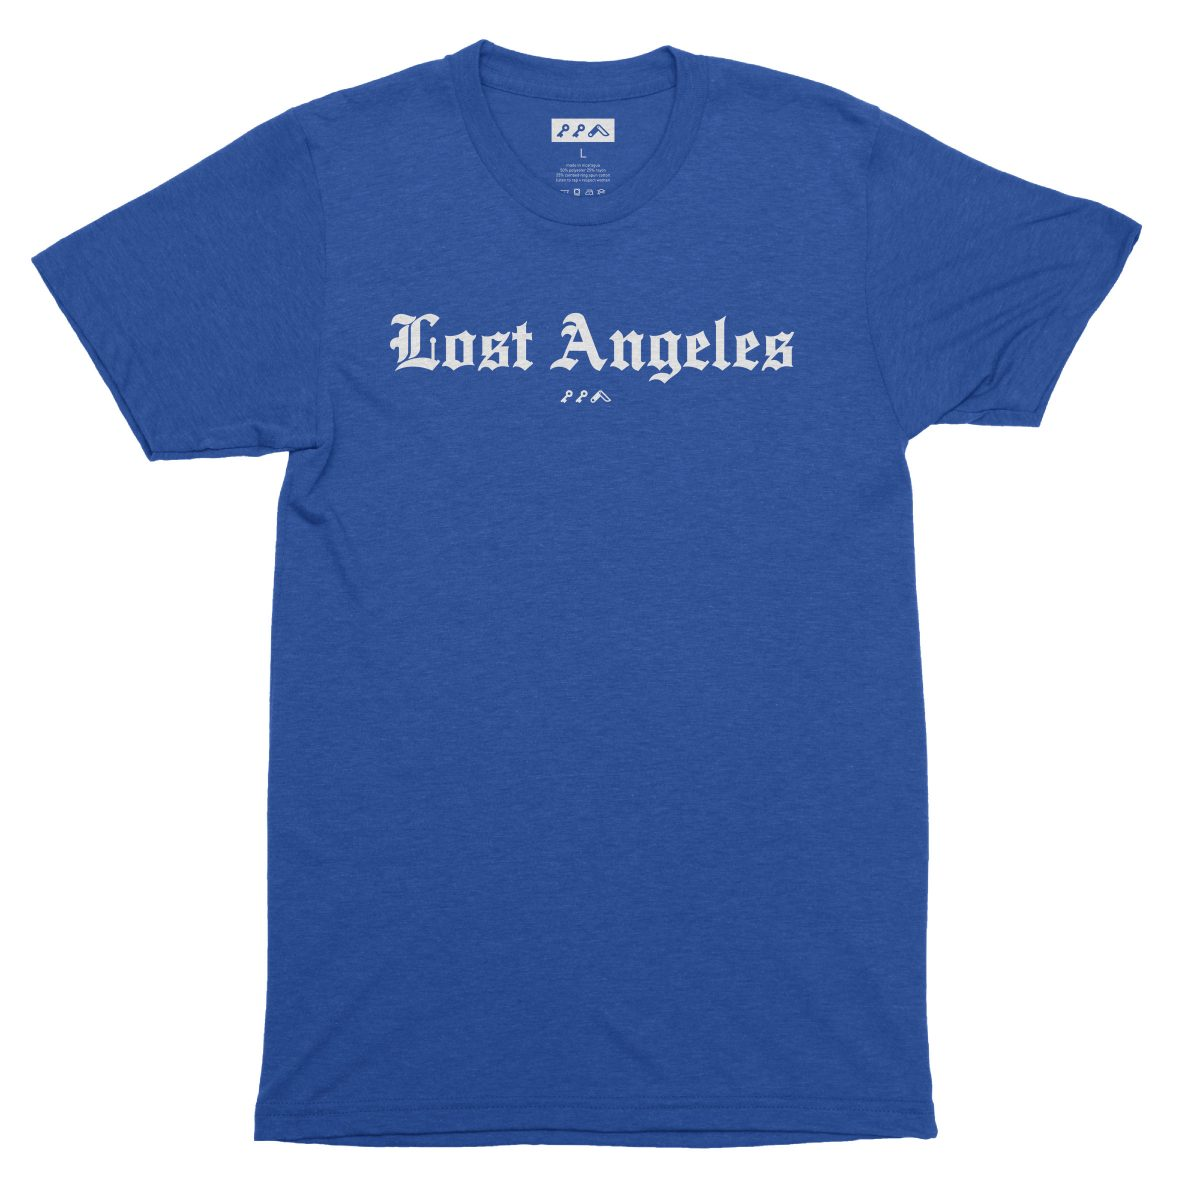 """Lost Angeles"" soft tri-blend t-shirts in dodger blue by KIKICUTT"